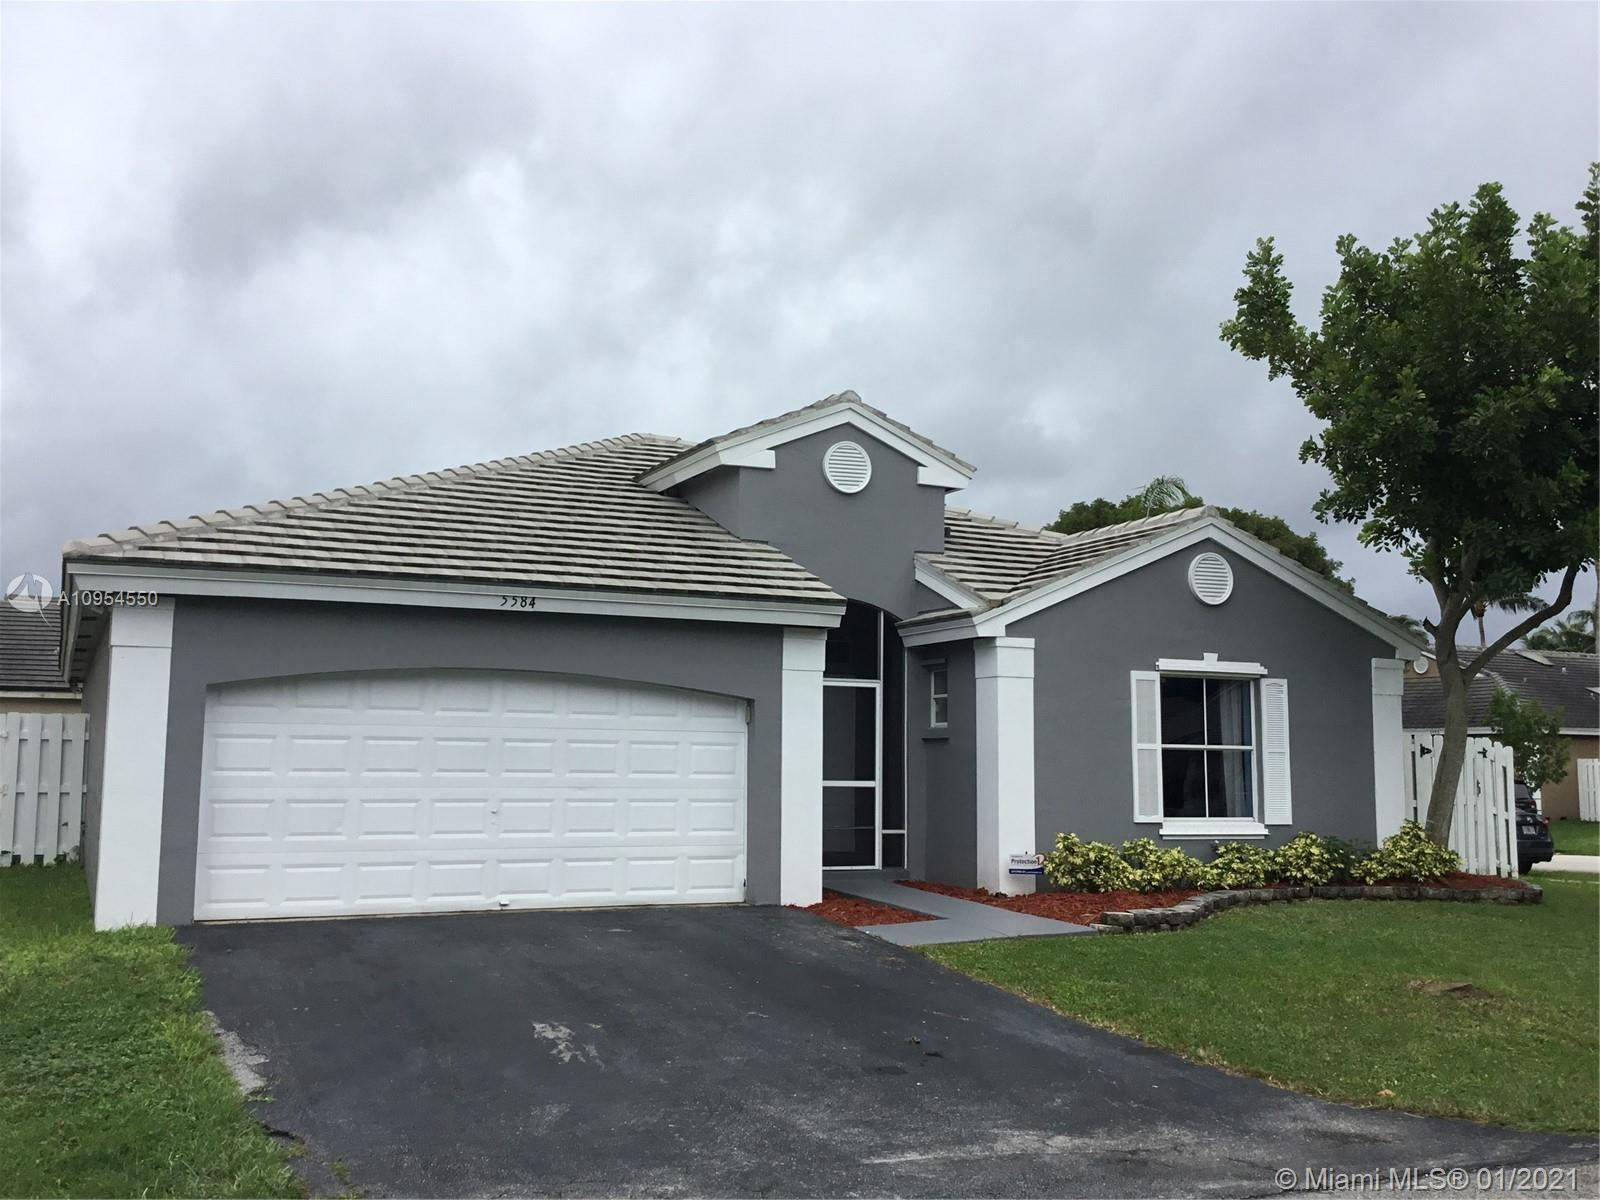 GORGEOUS 3 bedroom, 2 Bath home in the highly sought after Somerset in Winston Park. This home is renovated with the highest quality finishes, split bedrooms, vaulted ceilings, tile throughout, skylights, Hurricane shutters, two car garage, screened patio with huge backyard and NEW ROOF!